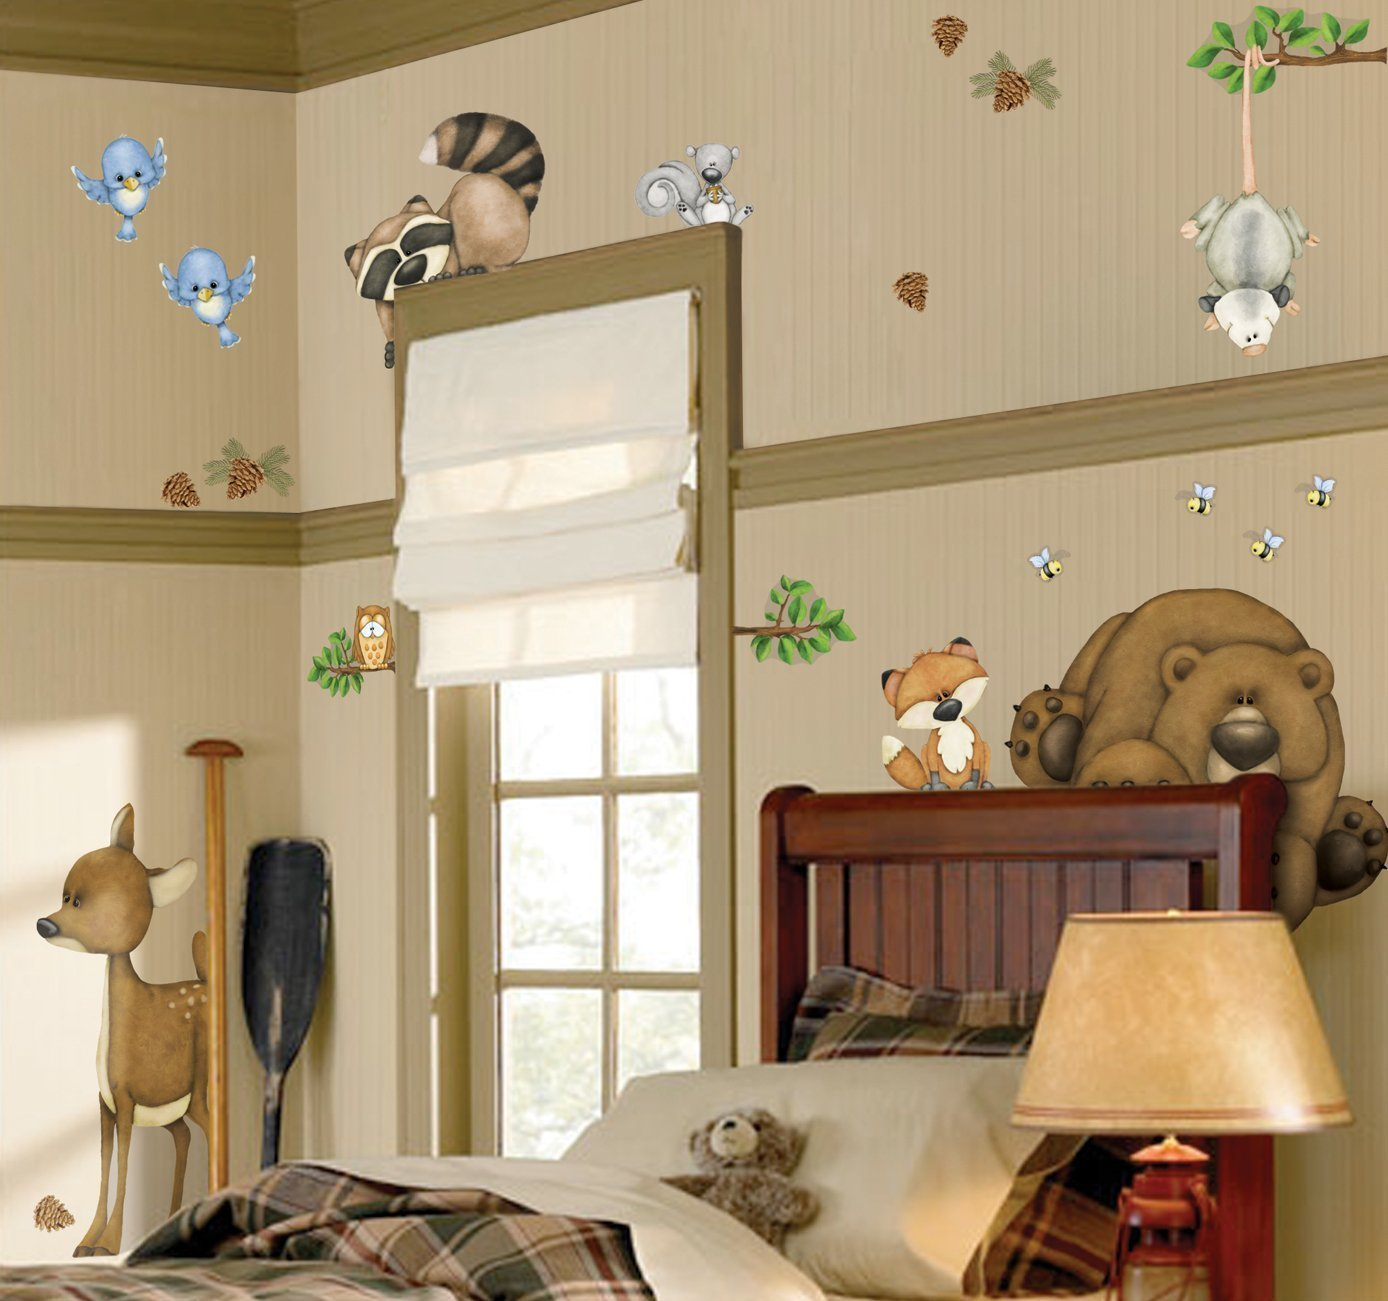 In The Woods Wildlife Animal Stickers Wall Decals Children Bedroom Decor by, Includes 26 Pieces. By Border